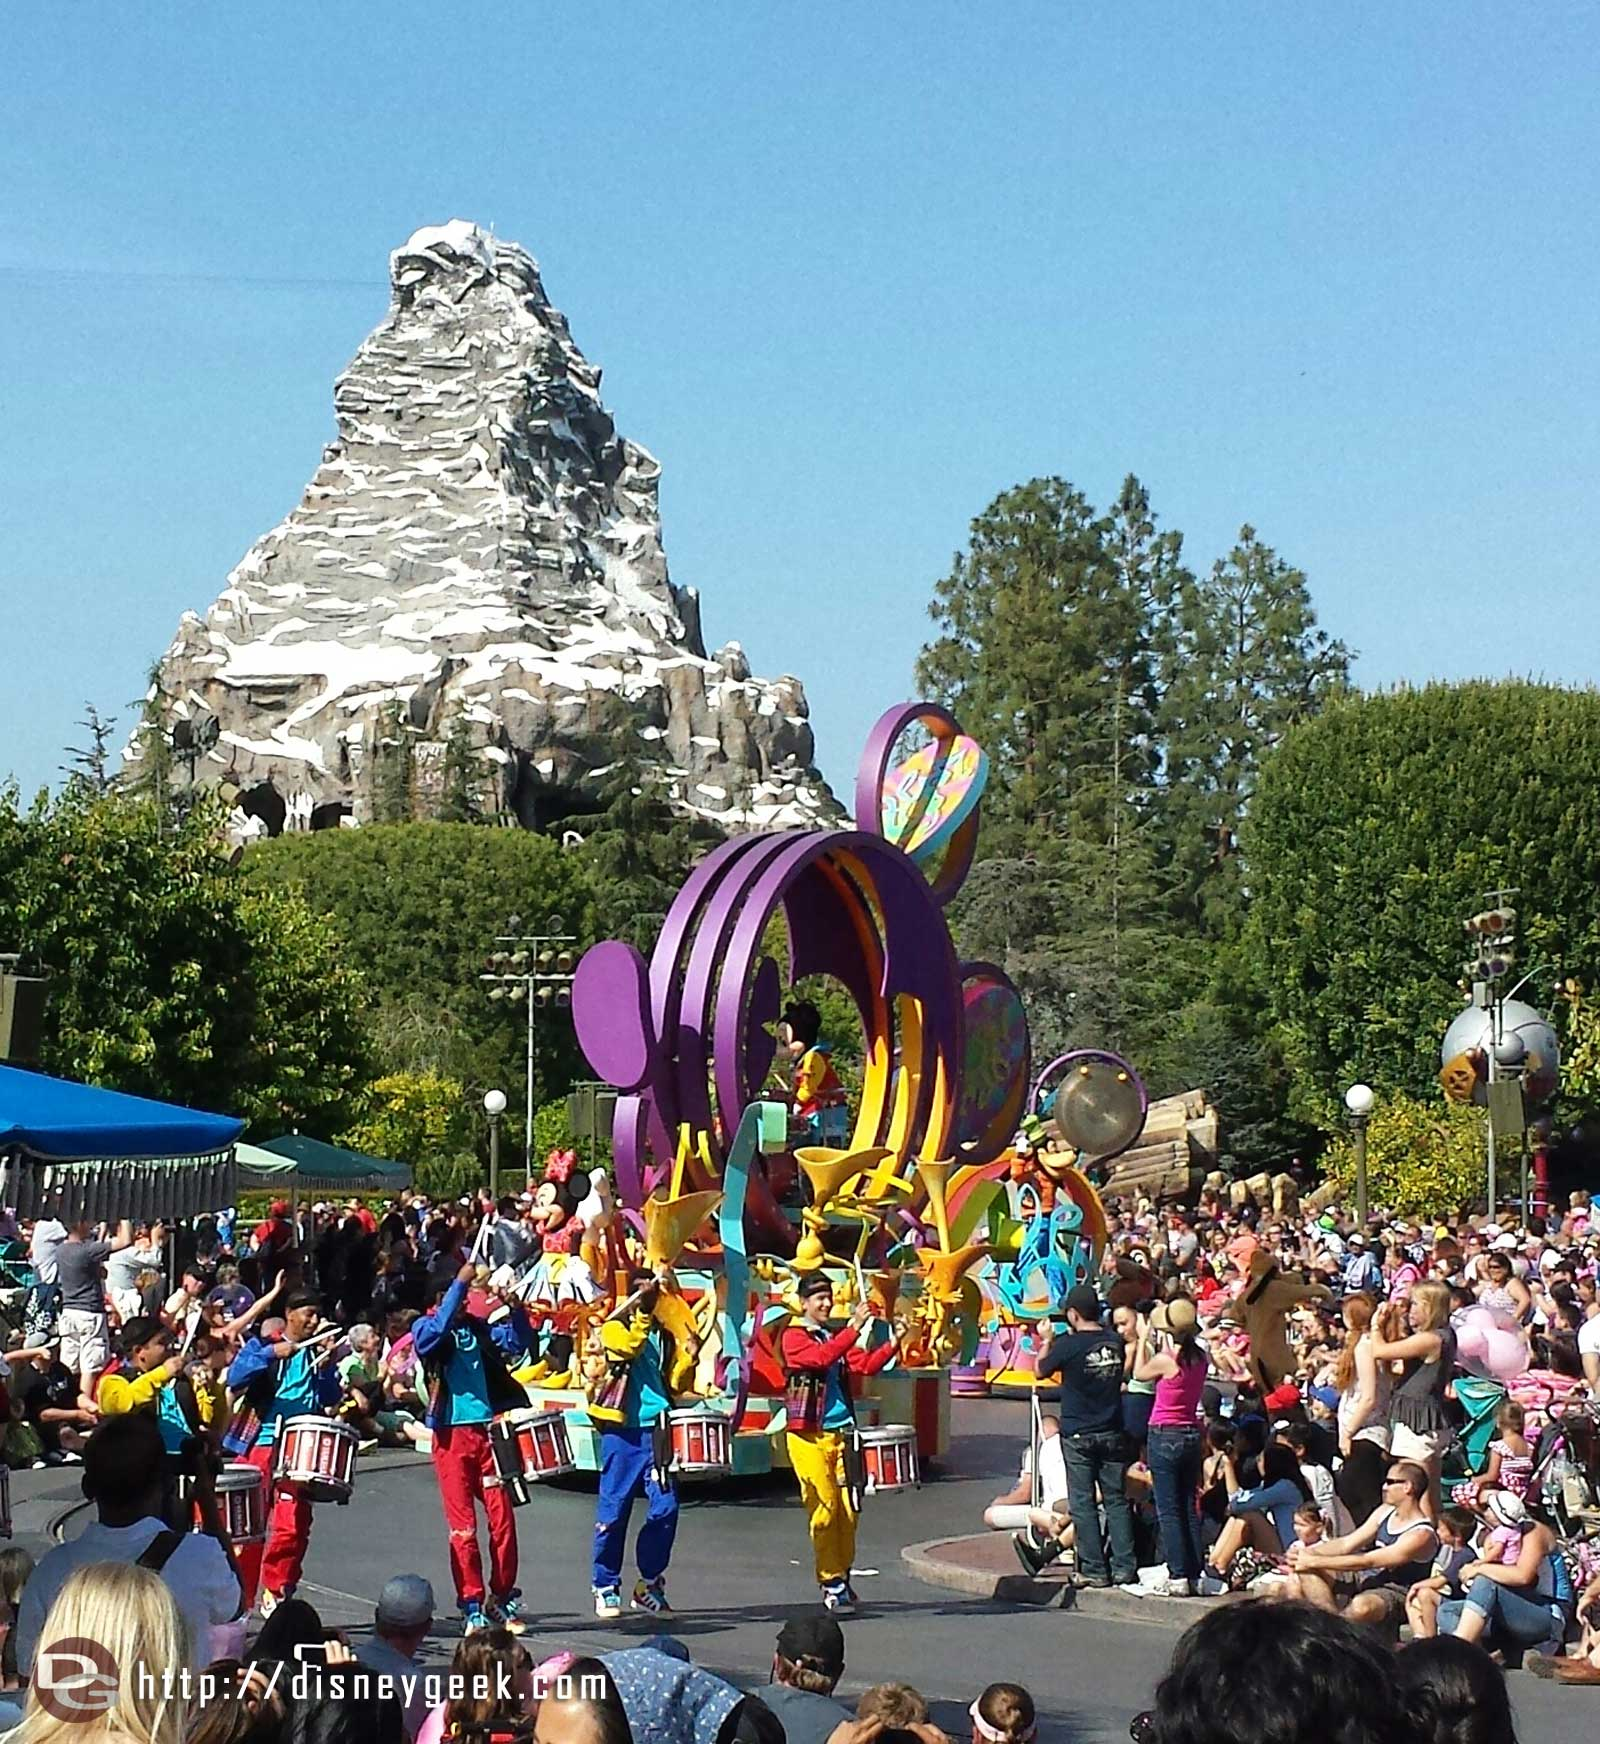 Soundsational making its way onto Main Street